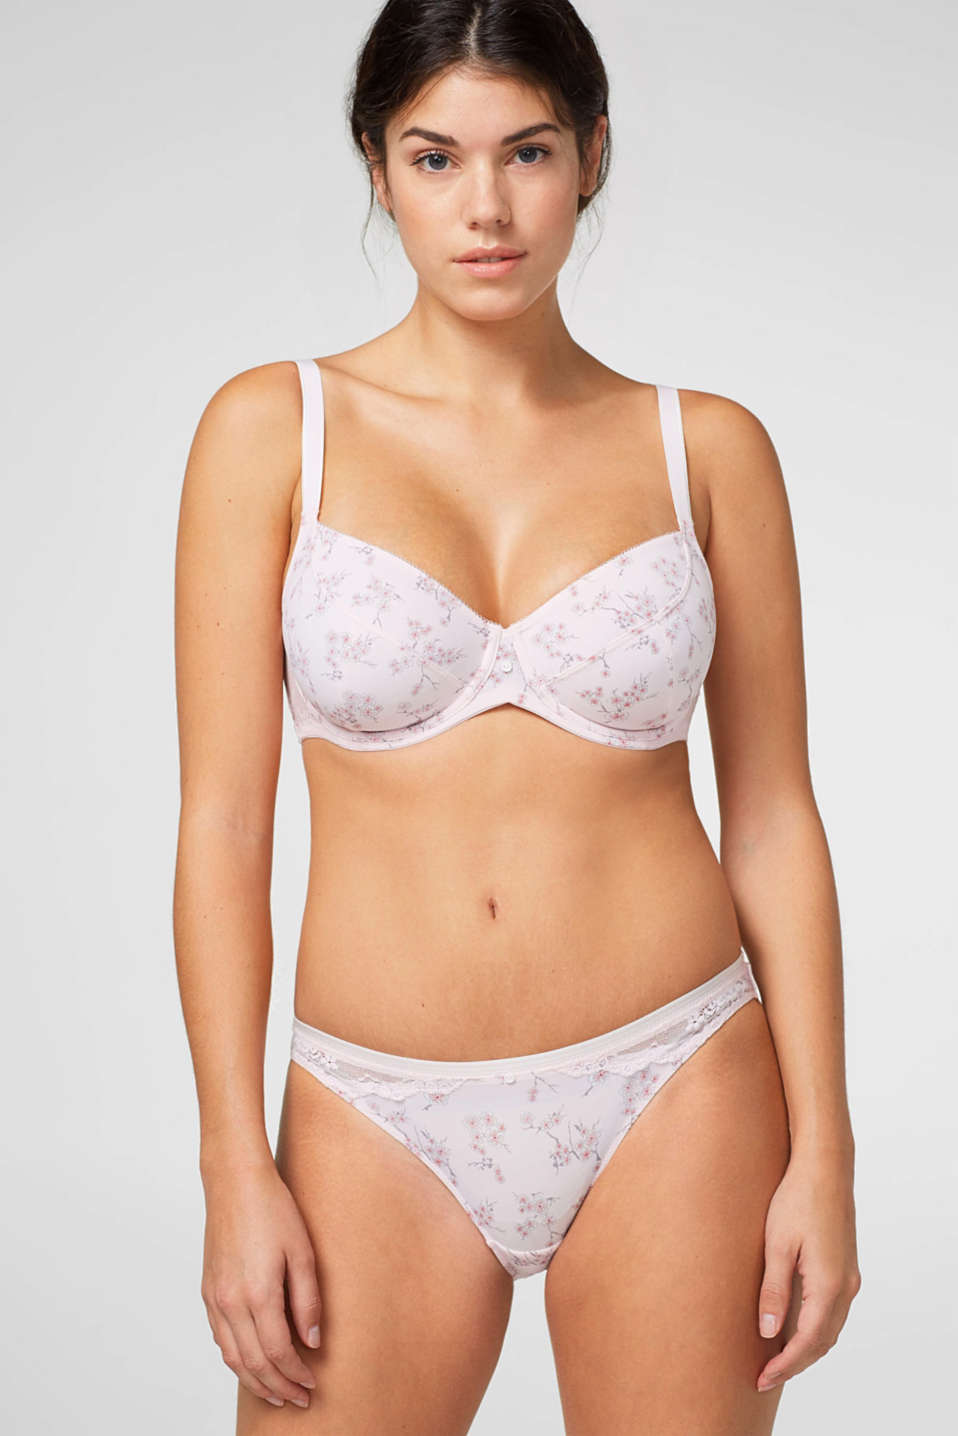 Esprit - Unpadded underwire bra for big cups